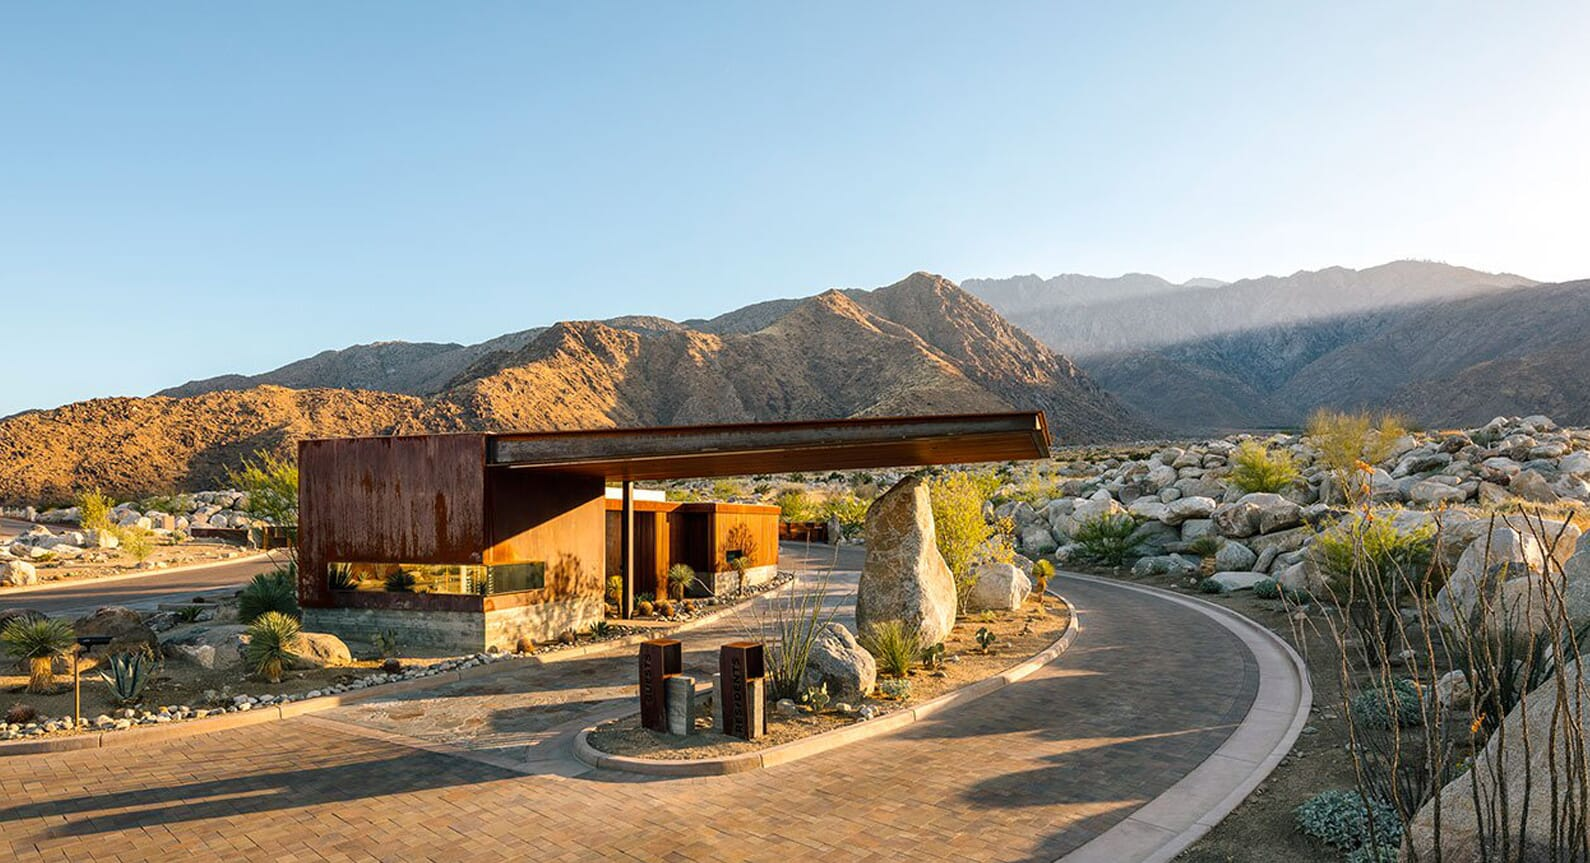 The Desert Palisades Guardhouse in Coachella Valley, California